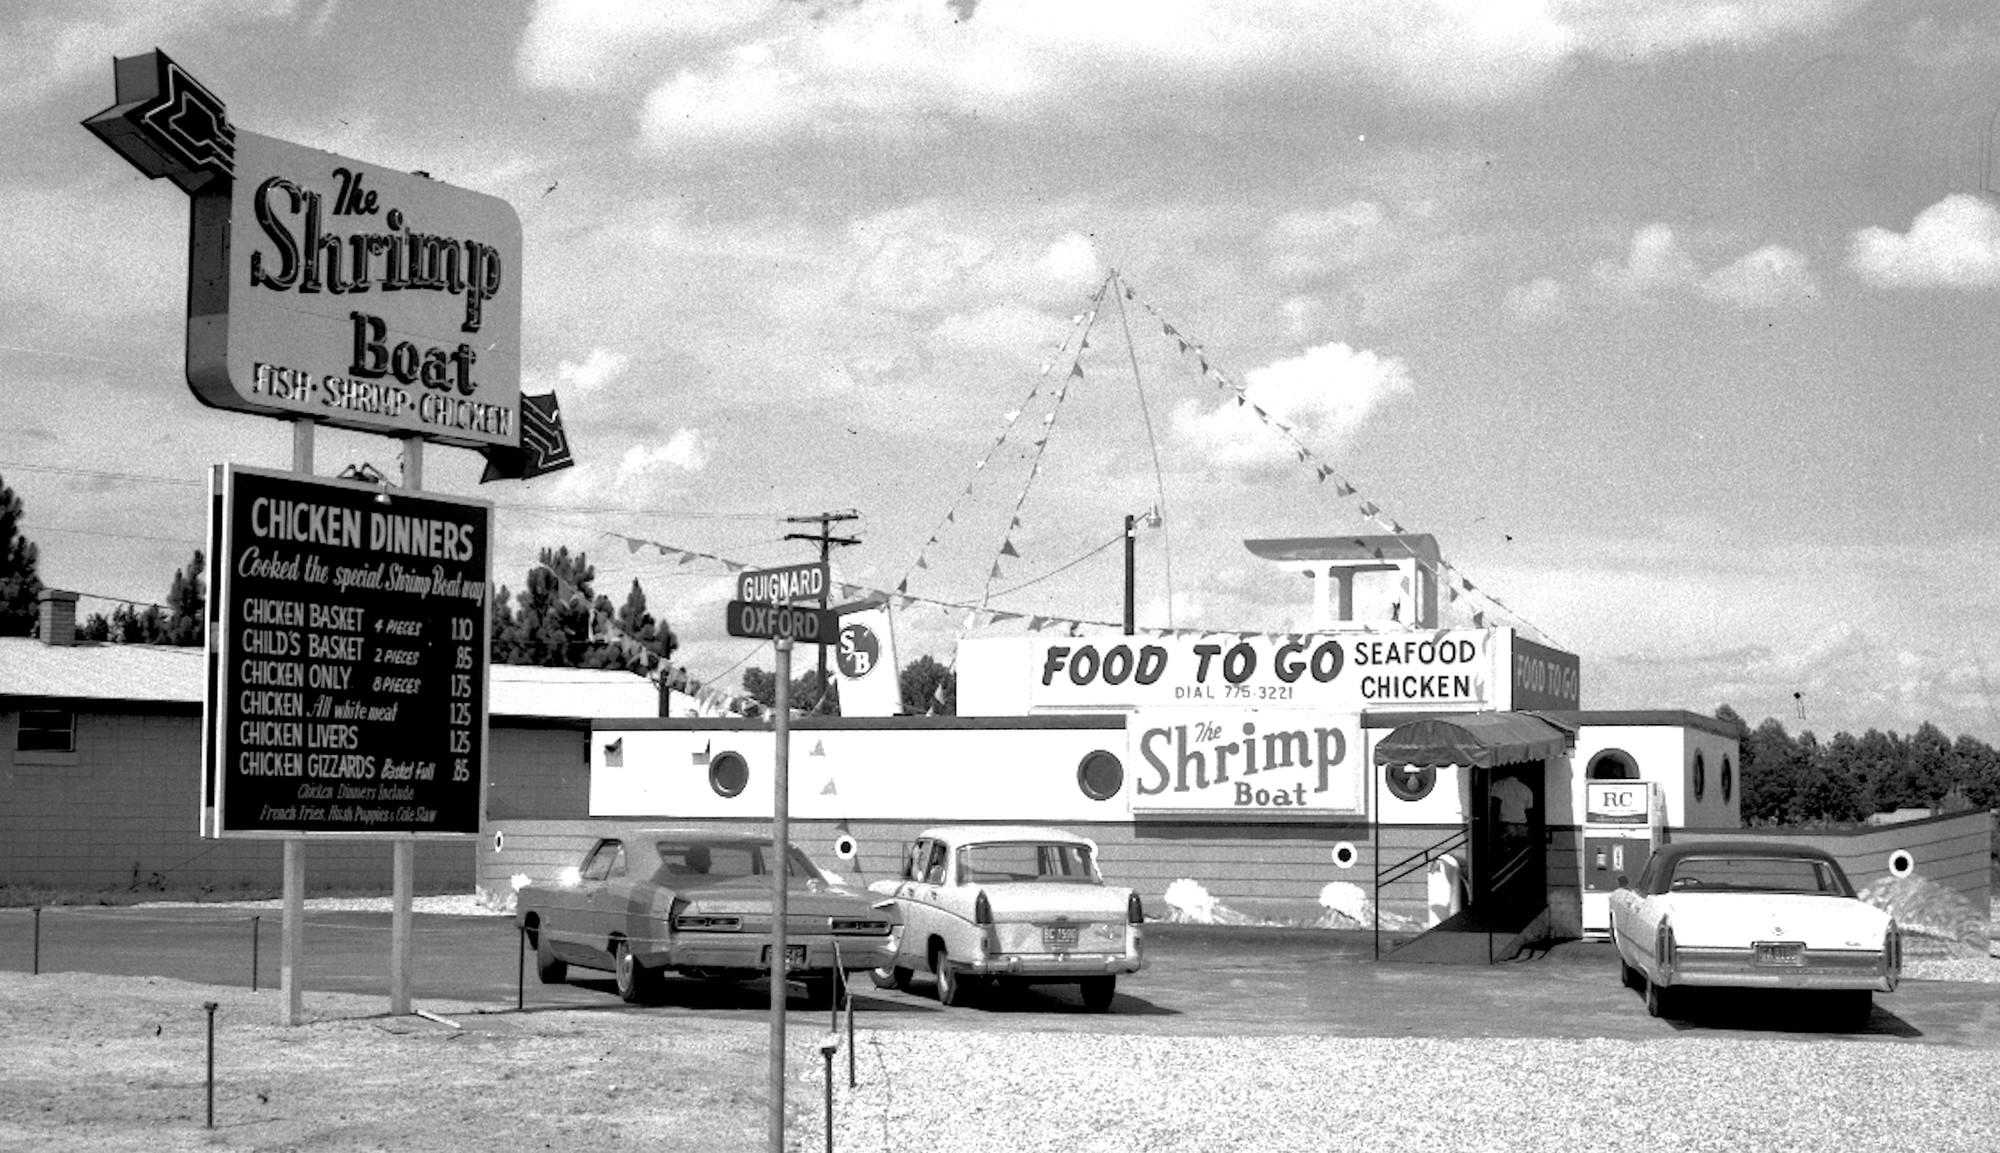 The Shrimp Boat restaurant was popular for its shrimp and chicken dinners.